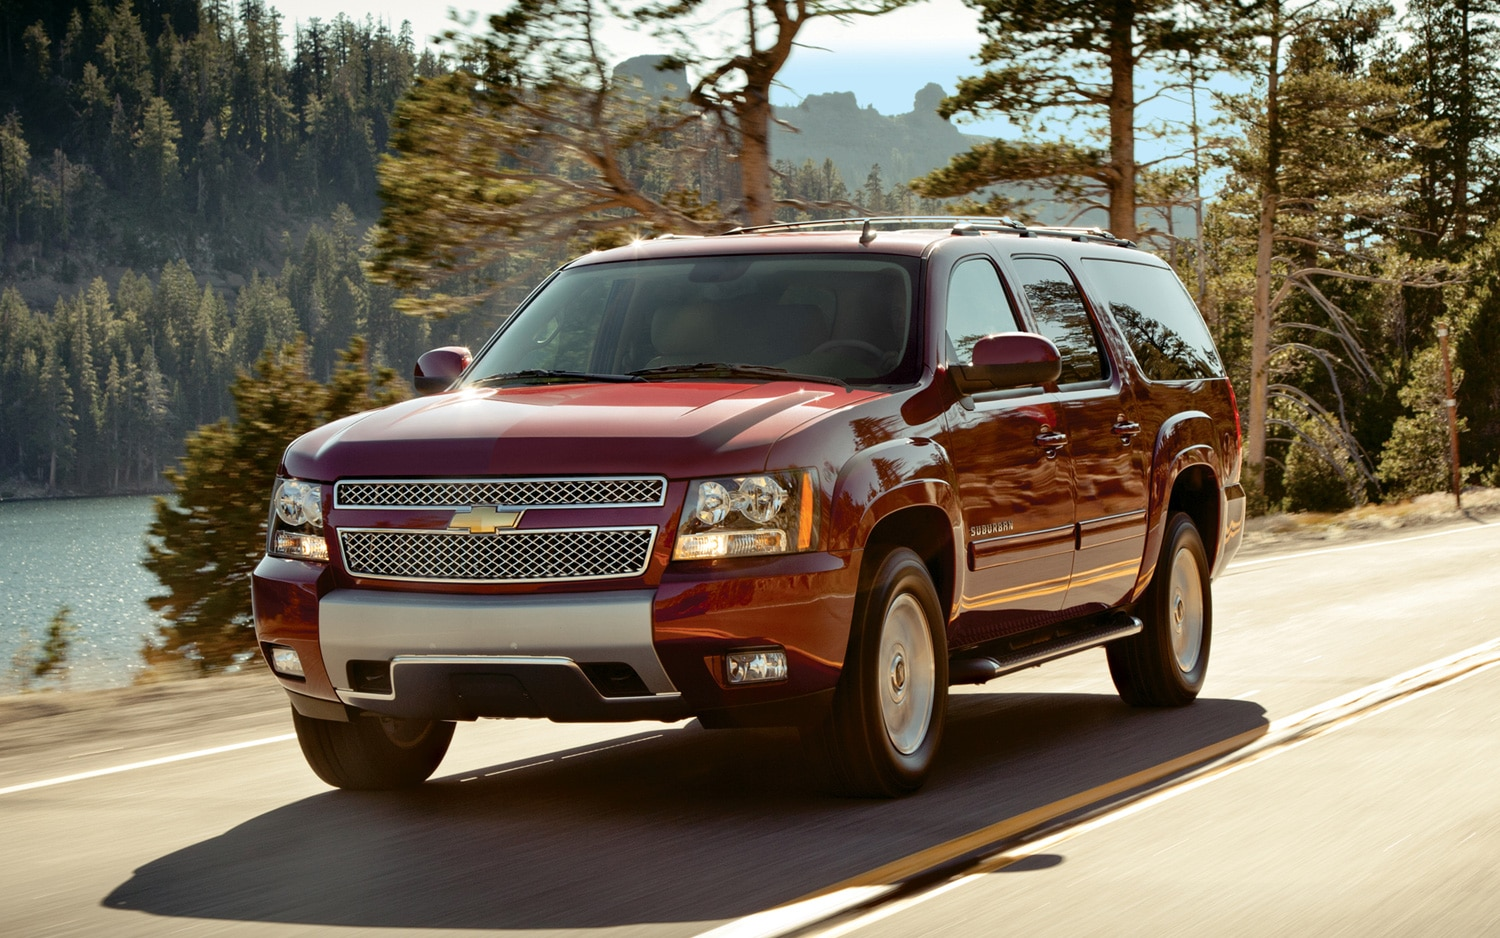 recall central 55 000 cadillac chevrolet gmc trucks and suvs could roll away when parked. Black Bedroom Furniture Sets. Home Design Ideas